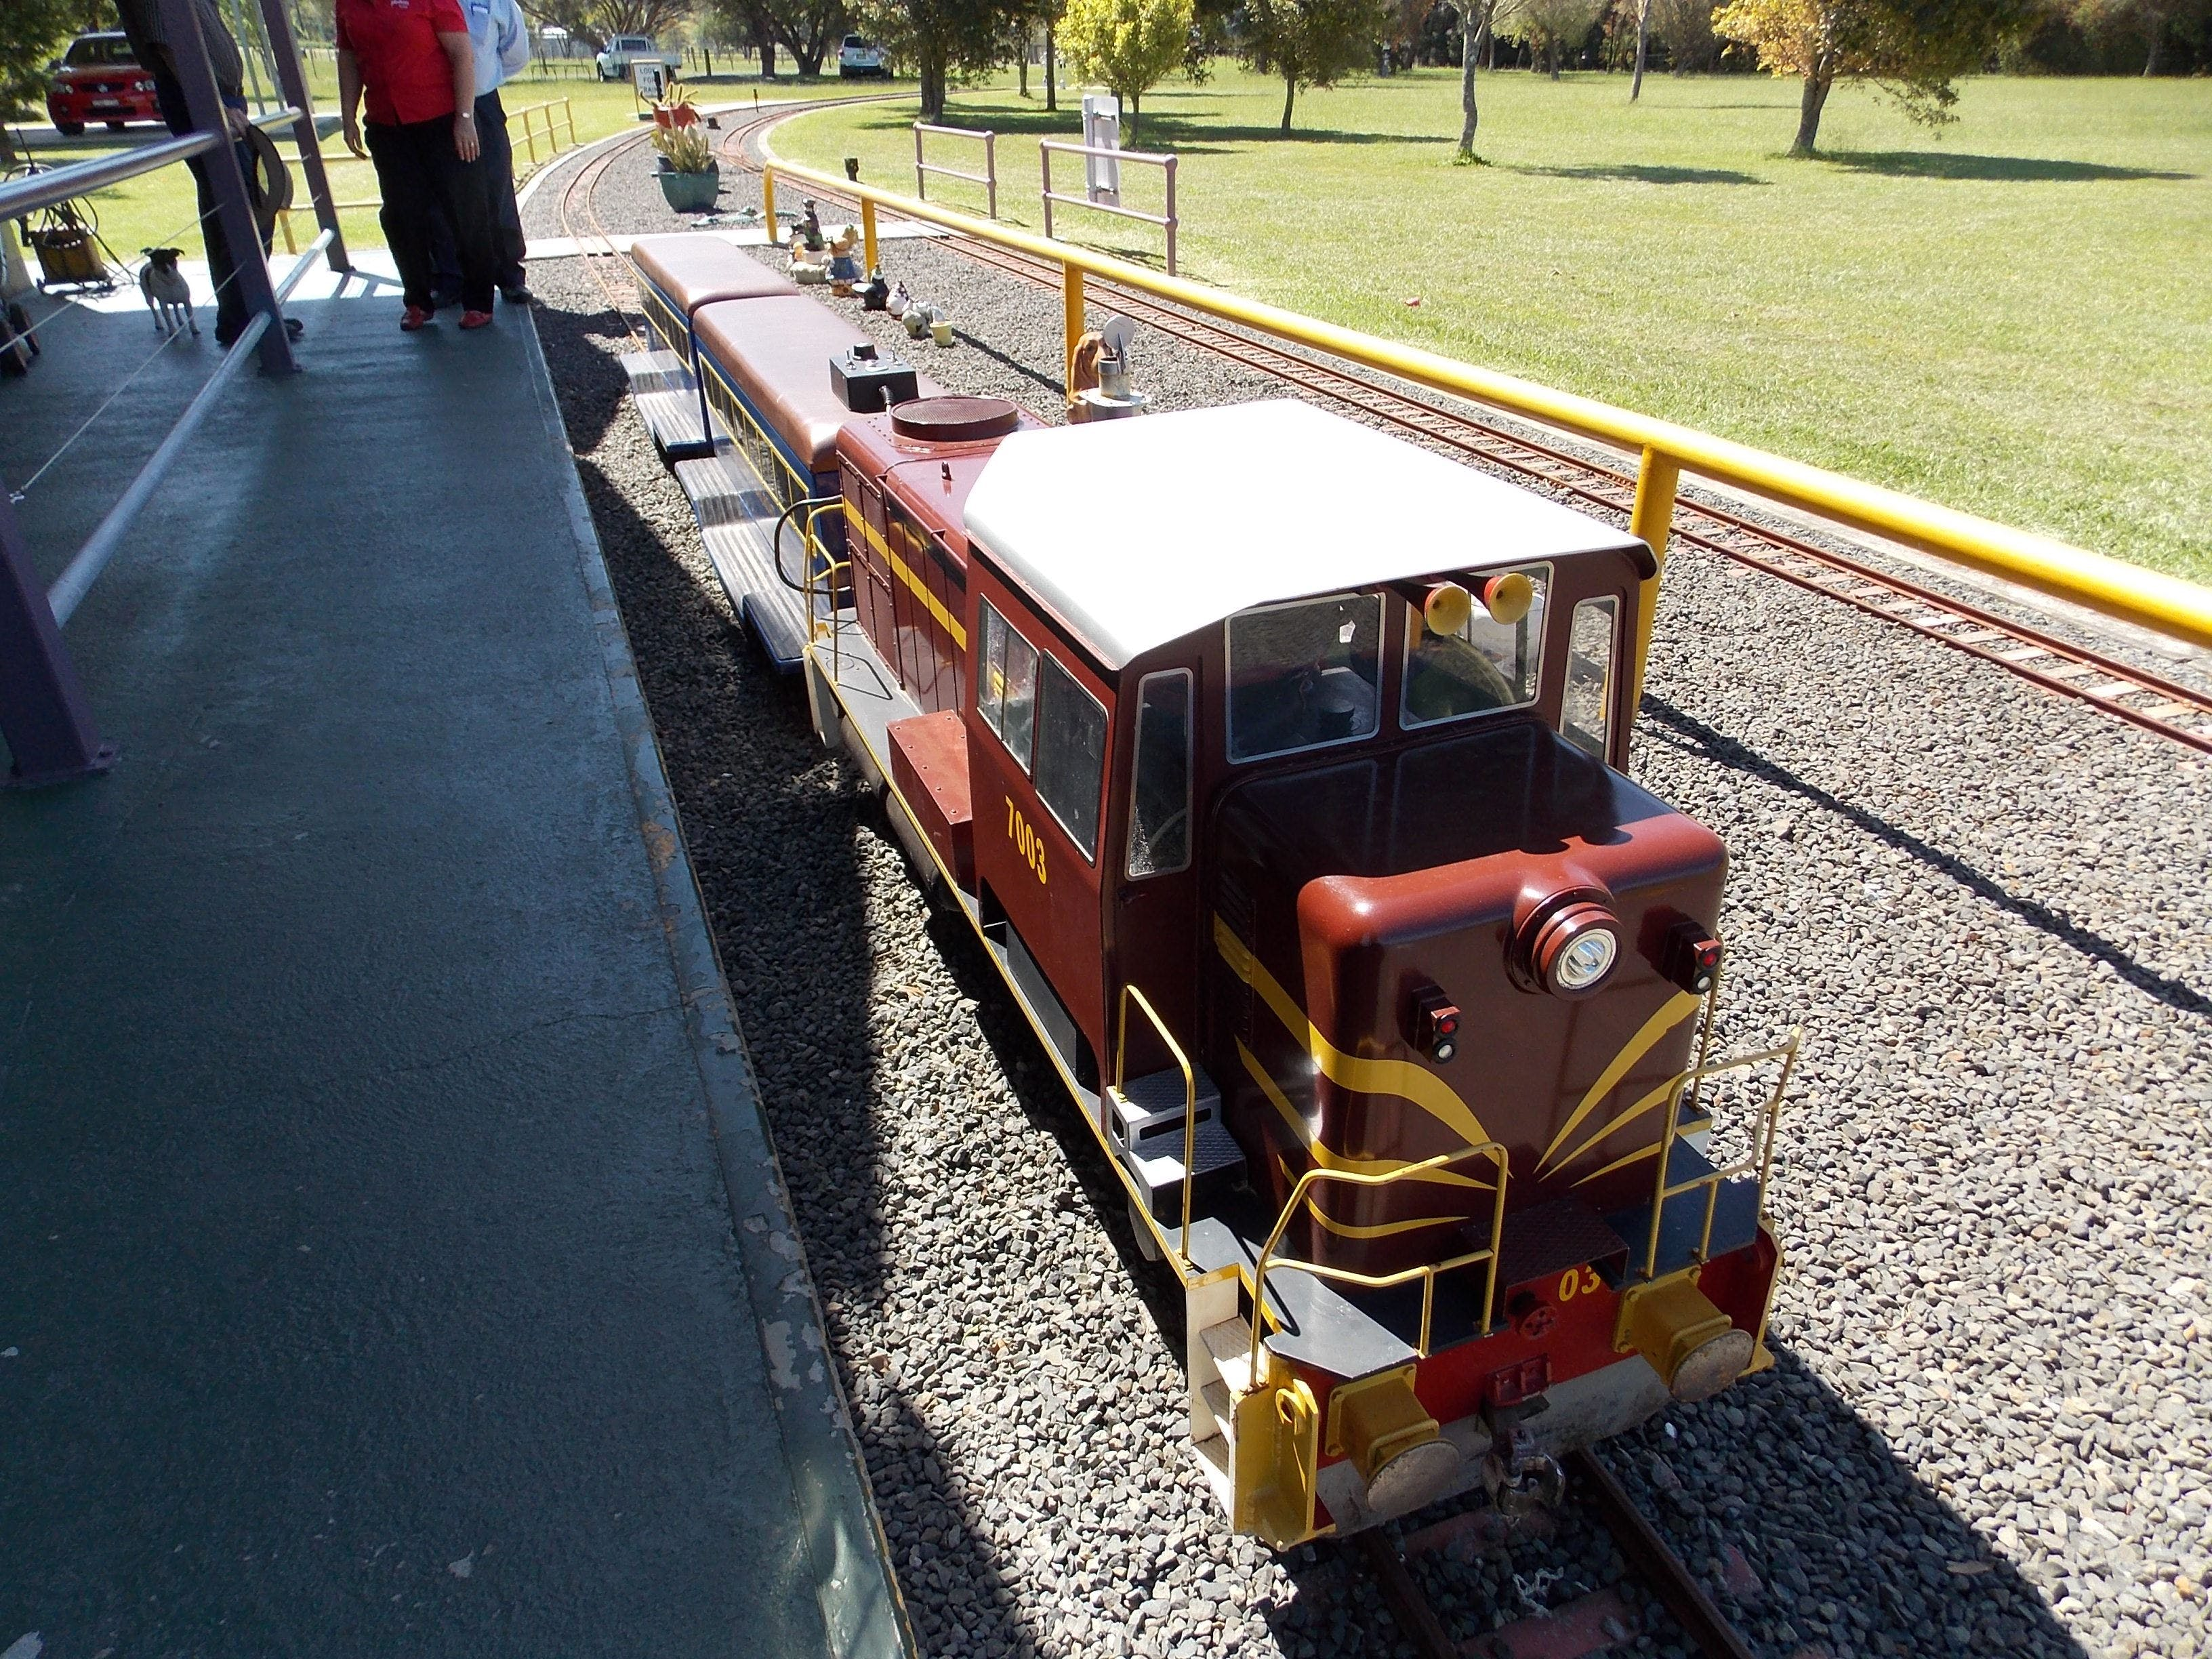 Penwood Miniature Railway - Accommodation in Bendigo